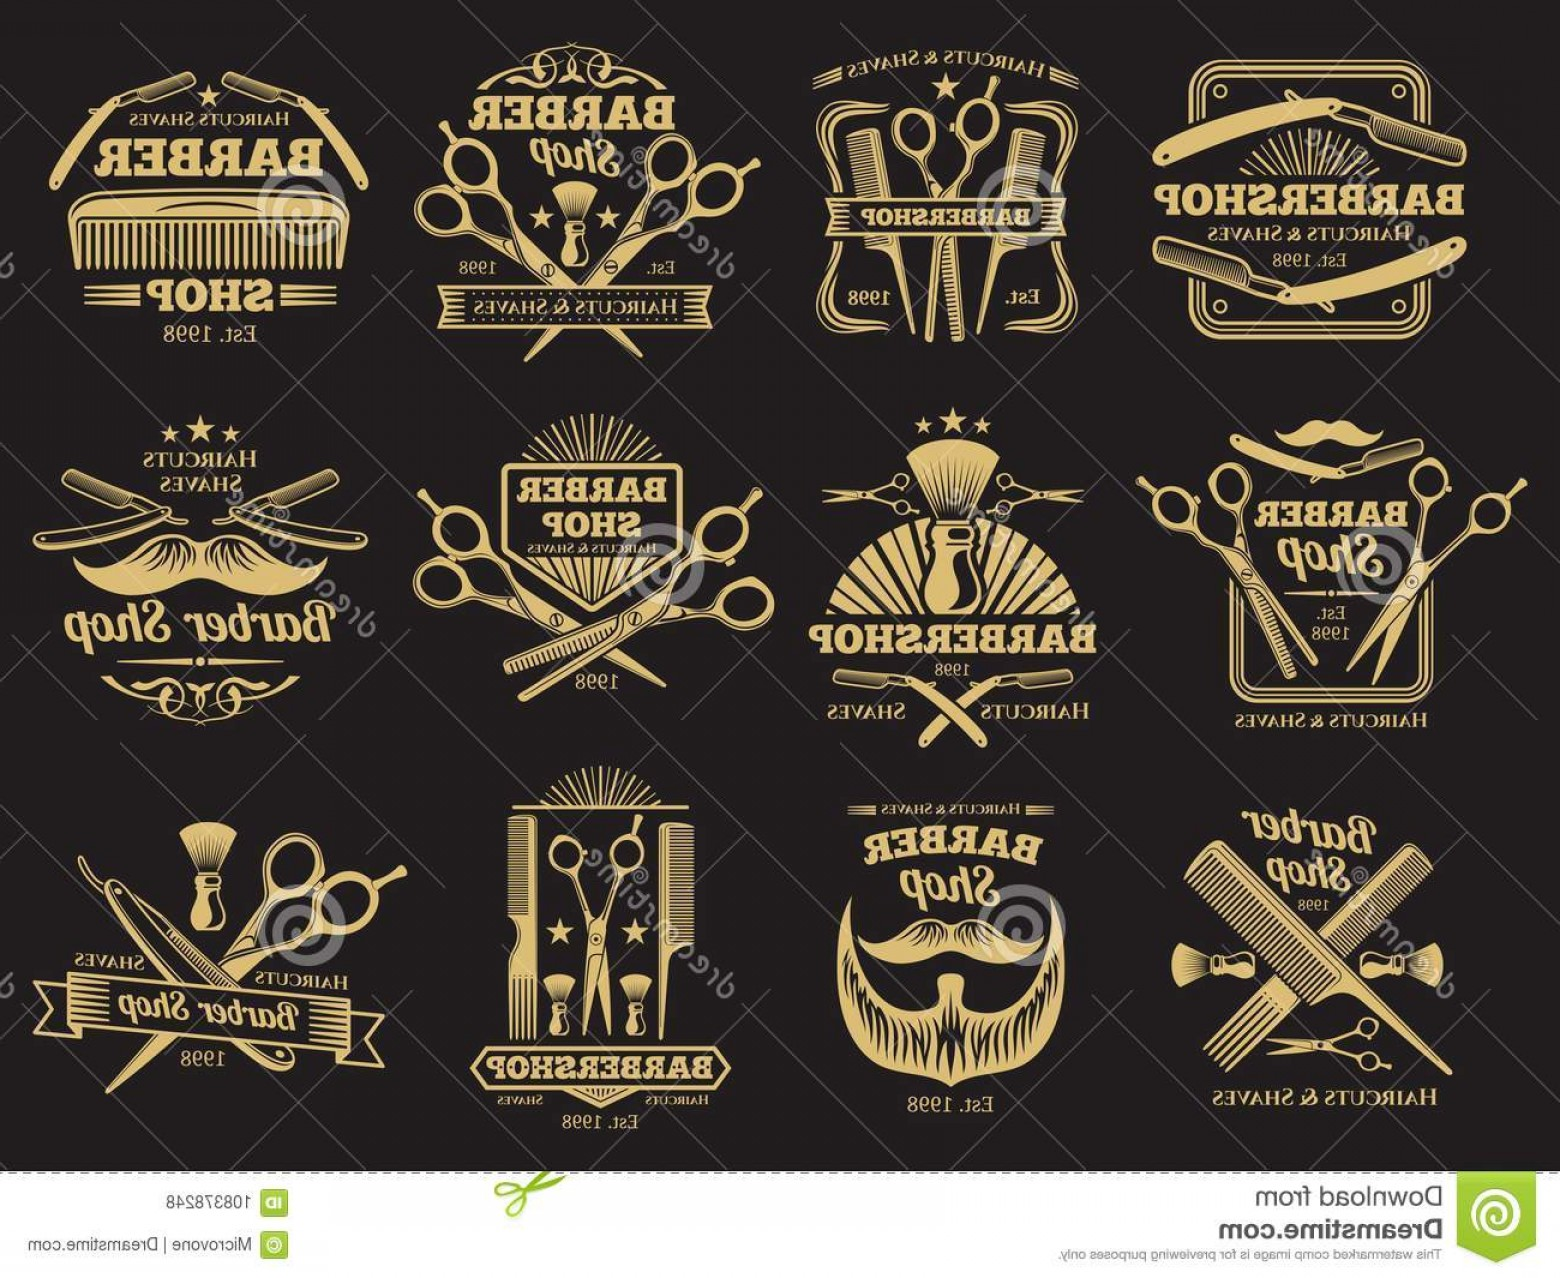 Golden Barber Vector: Old Barbershop Vector Emblems Labels Old Golden Barbershop Vector Emblems Labels Vintage Male Haircut Signs Illustration Image